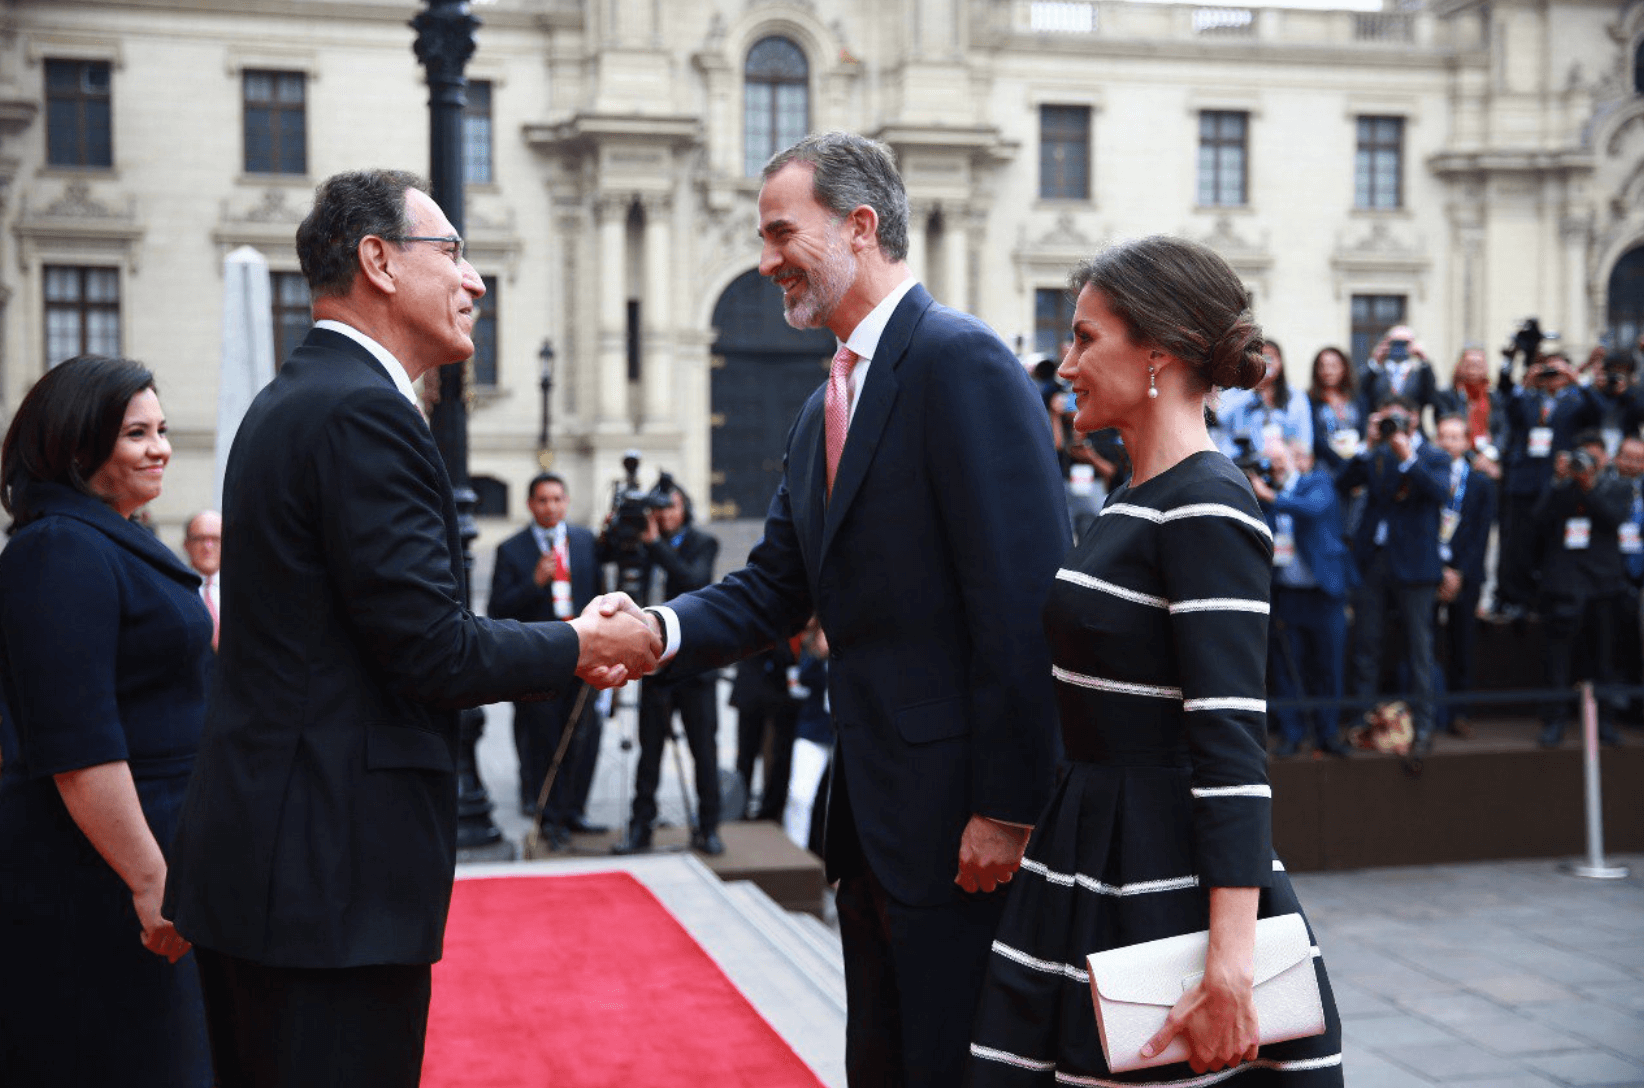 Peru welcomes Spanish King and Queen for royal visit